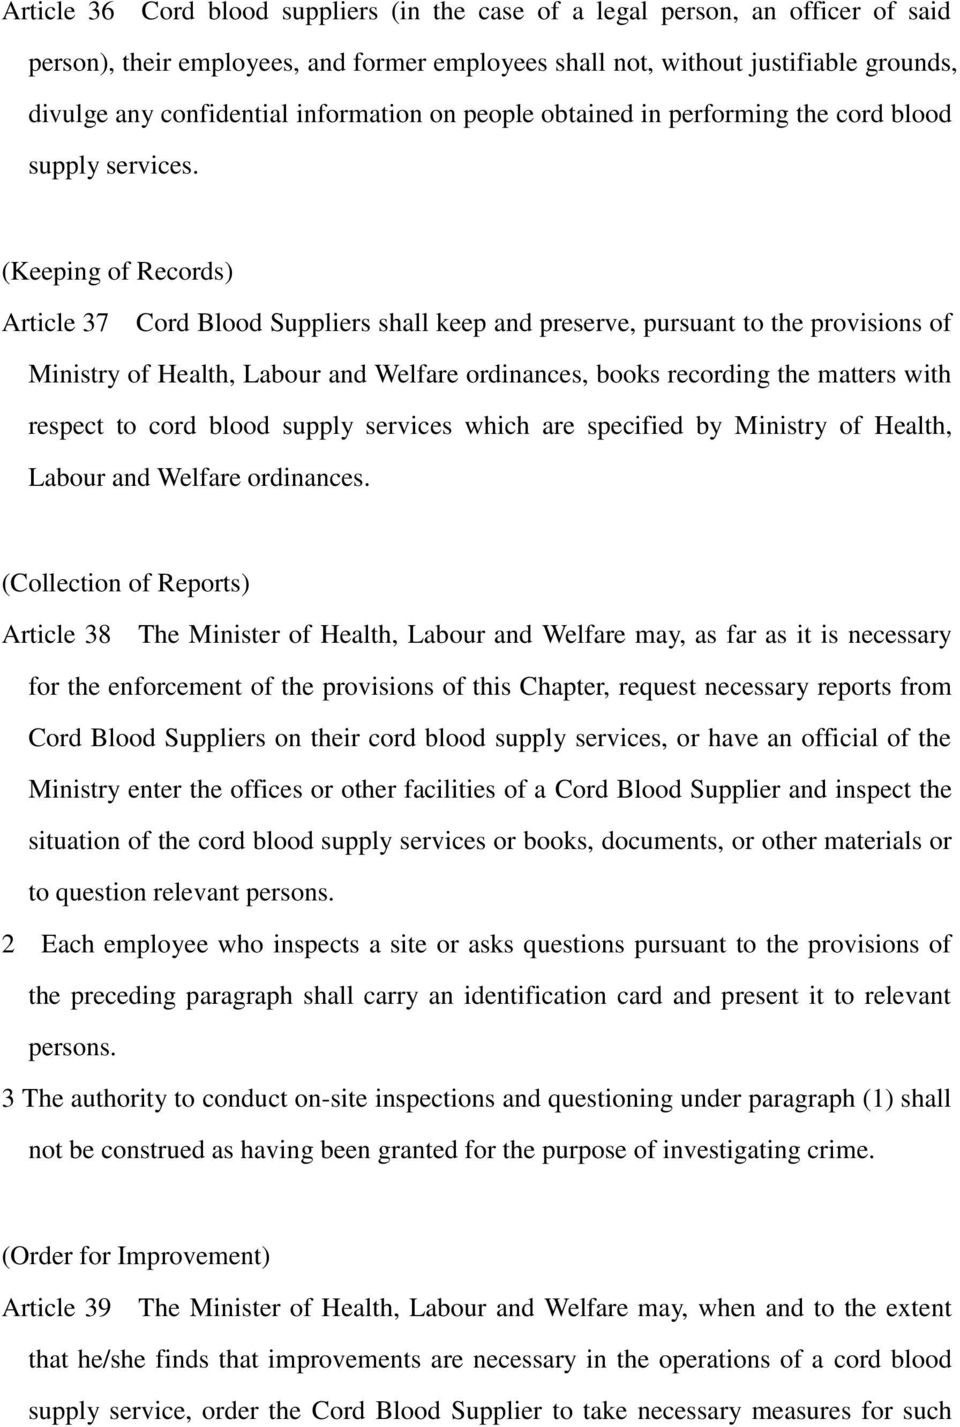 (Keeping of Records) Article 37 Cord Blood Suppliers shall keep and preserve, pursuant to the provisions of Ministry of Health, Labour and Welfare ordinances, books recording the matters with respect